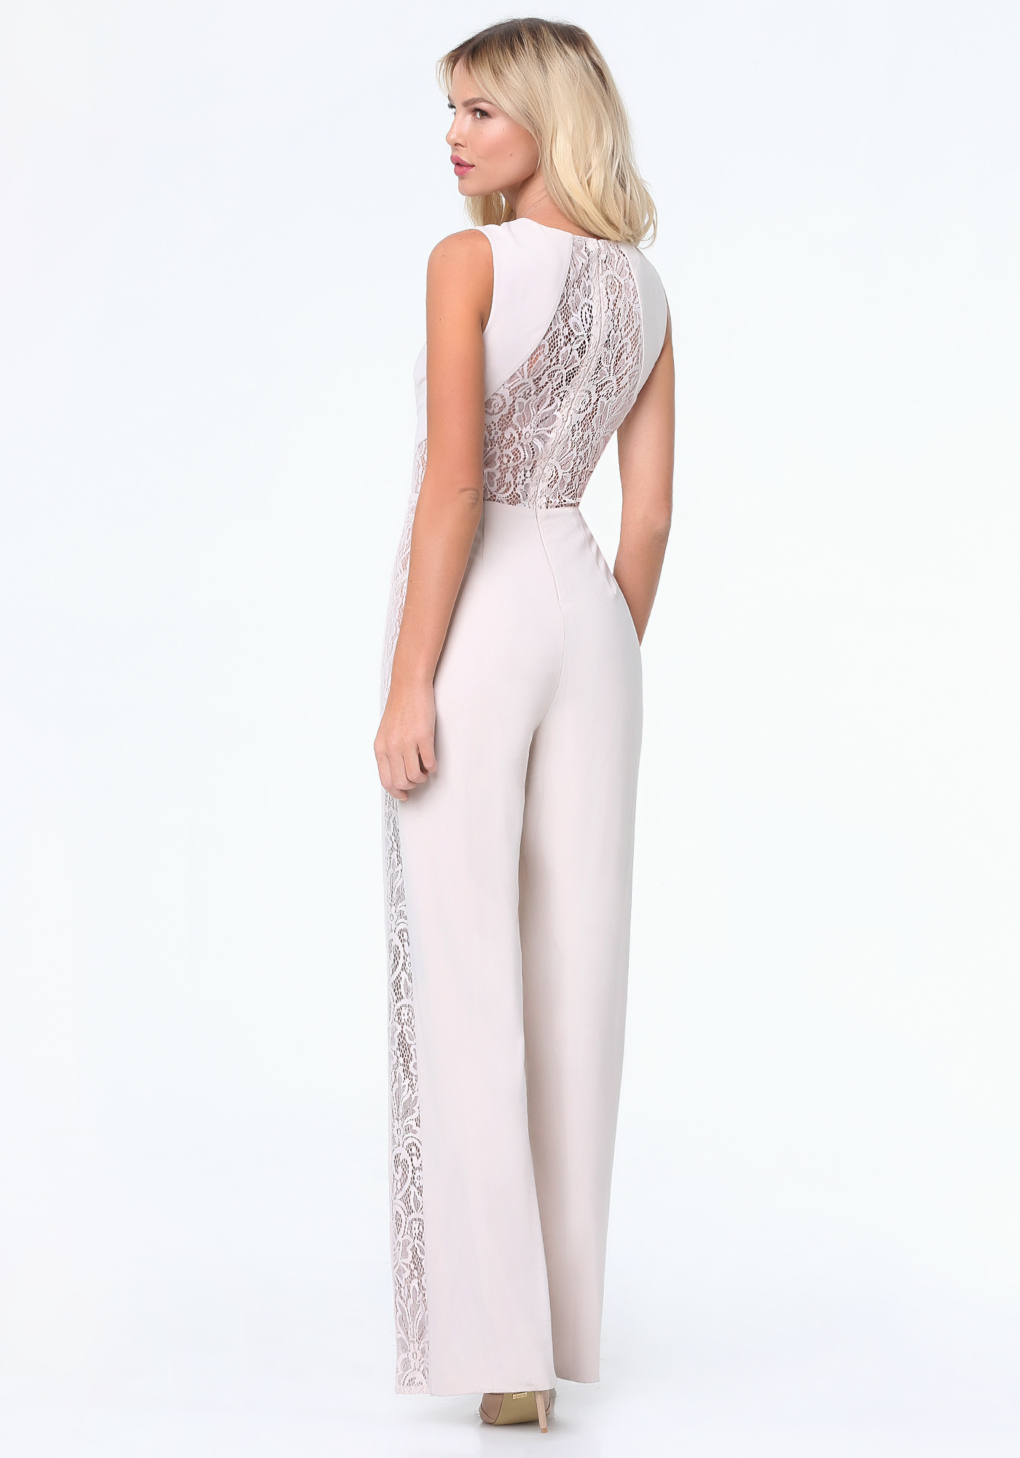 05a86538cf6 Bebe Lace Panel Jumpsuit in White - Lyst